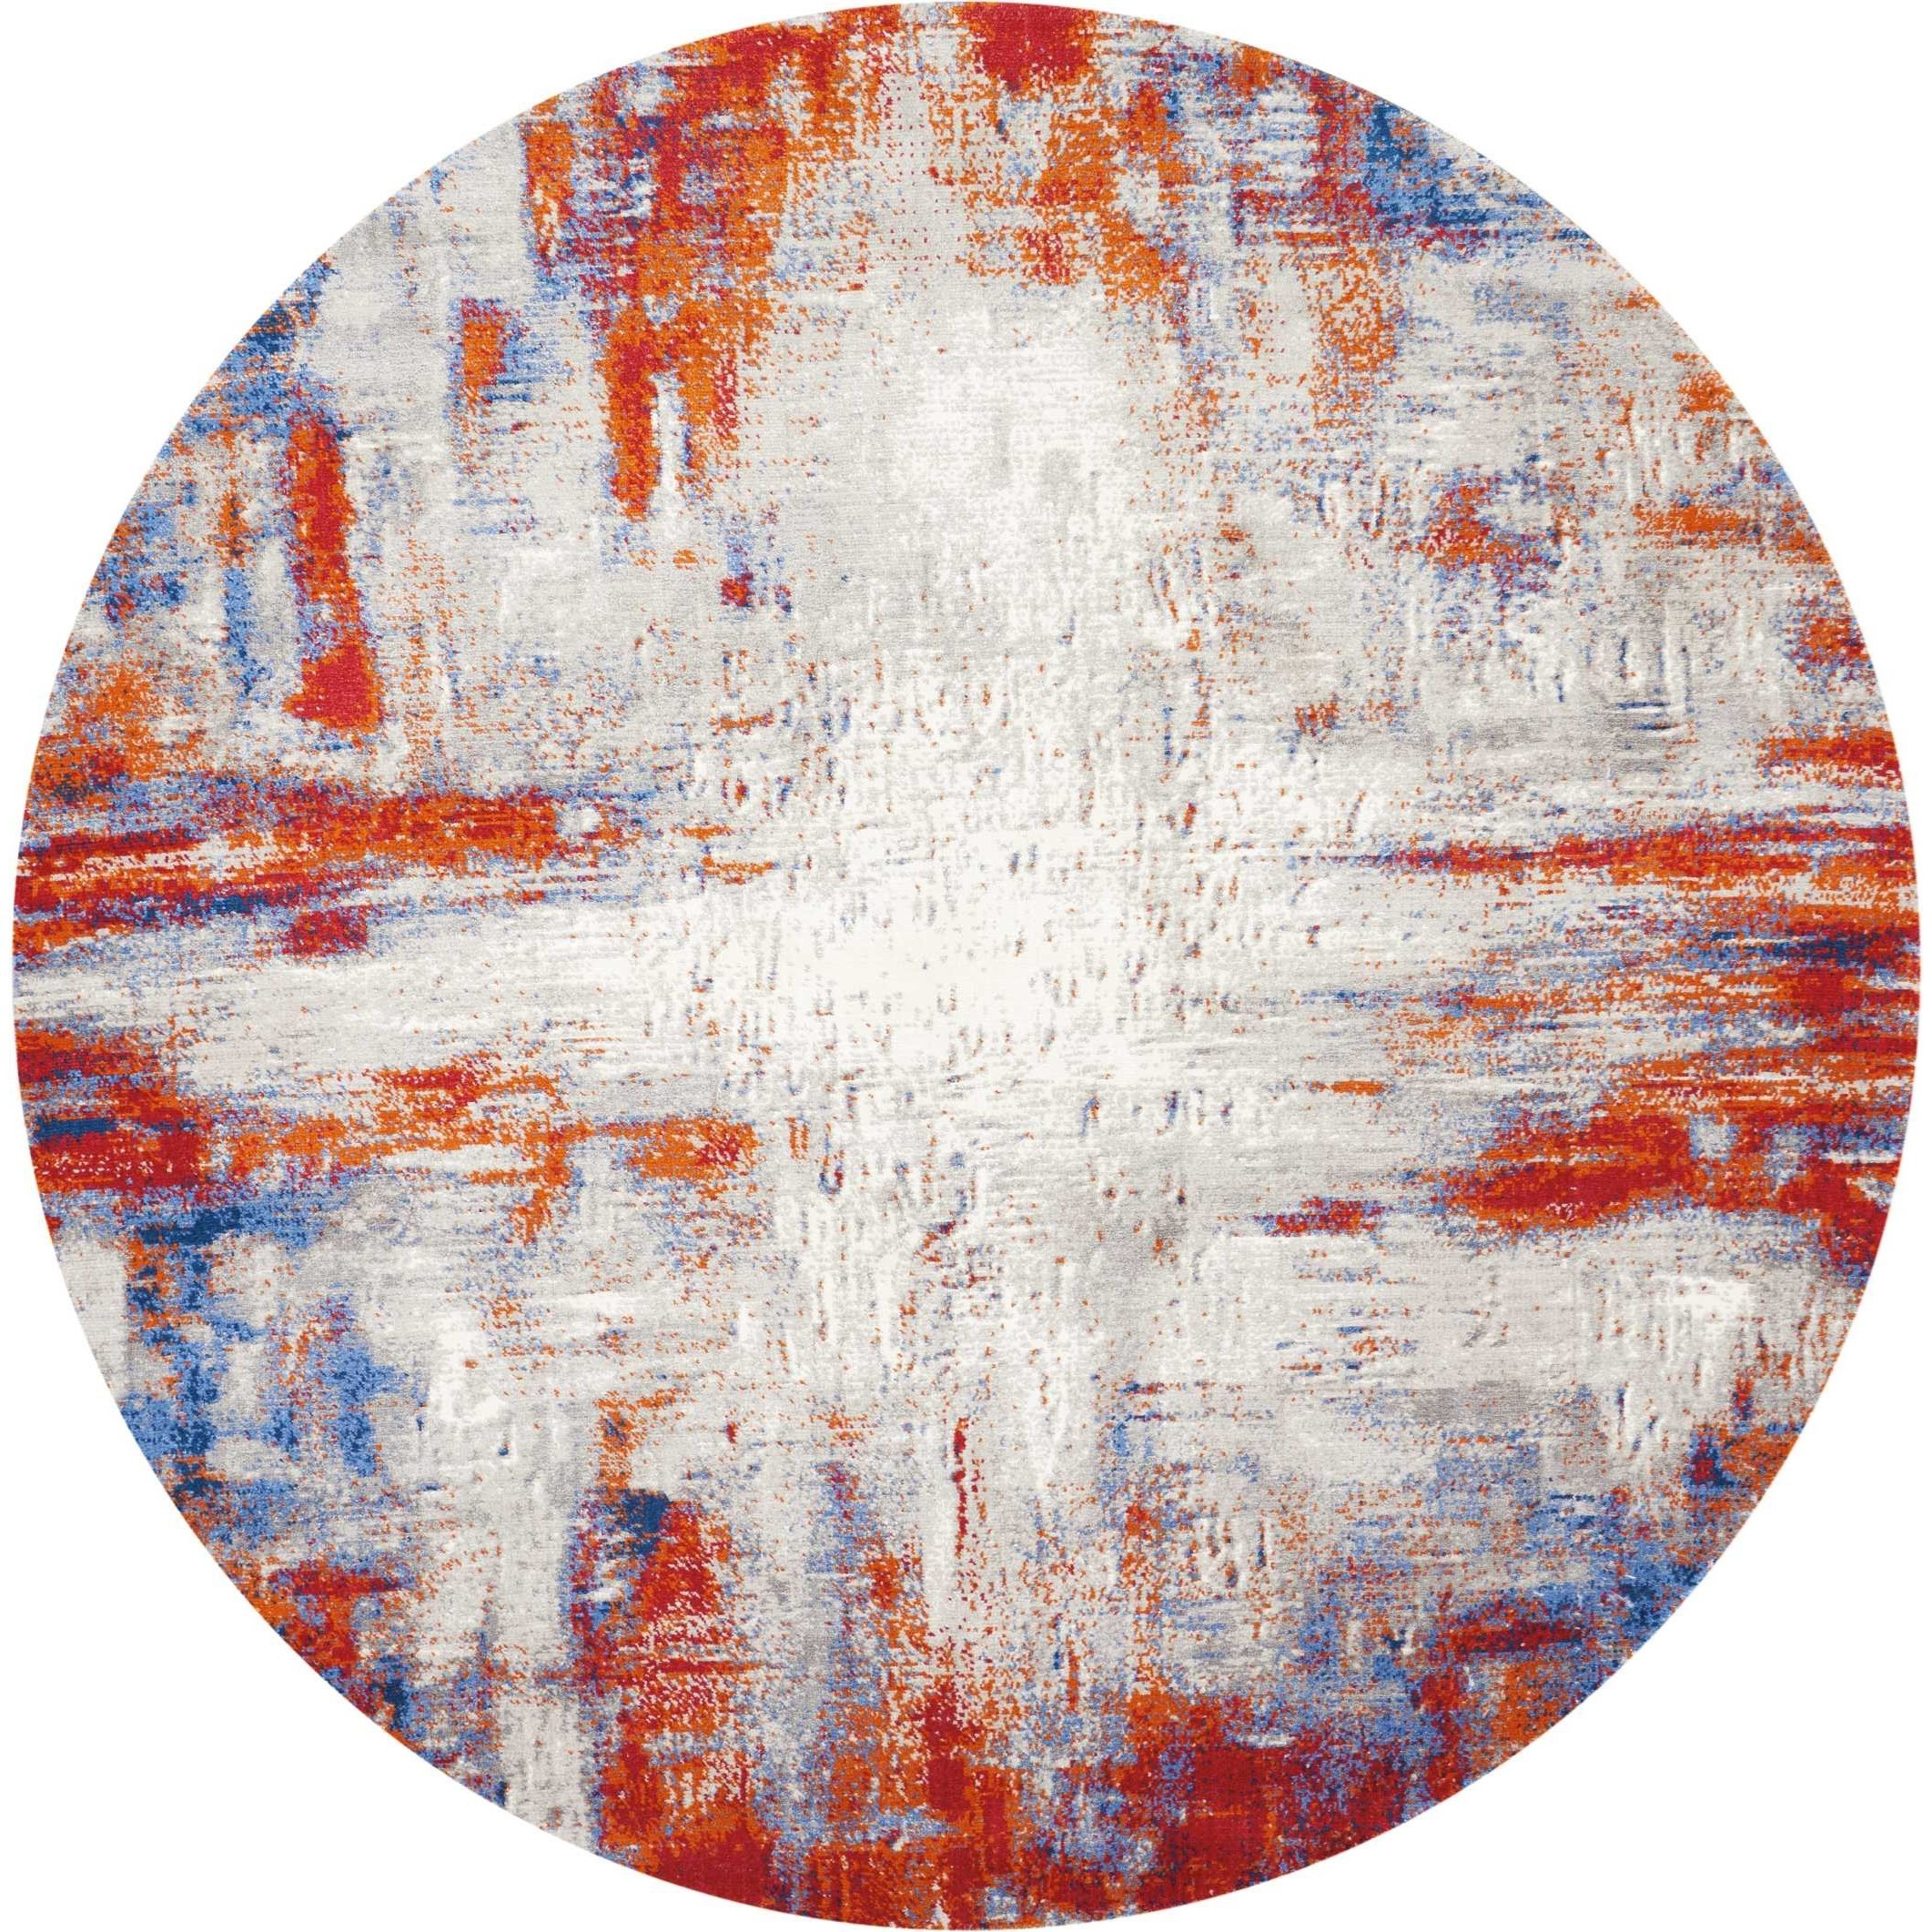 Twilight 8' Round Large Rug by Nourison at Home Collections Furniture